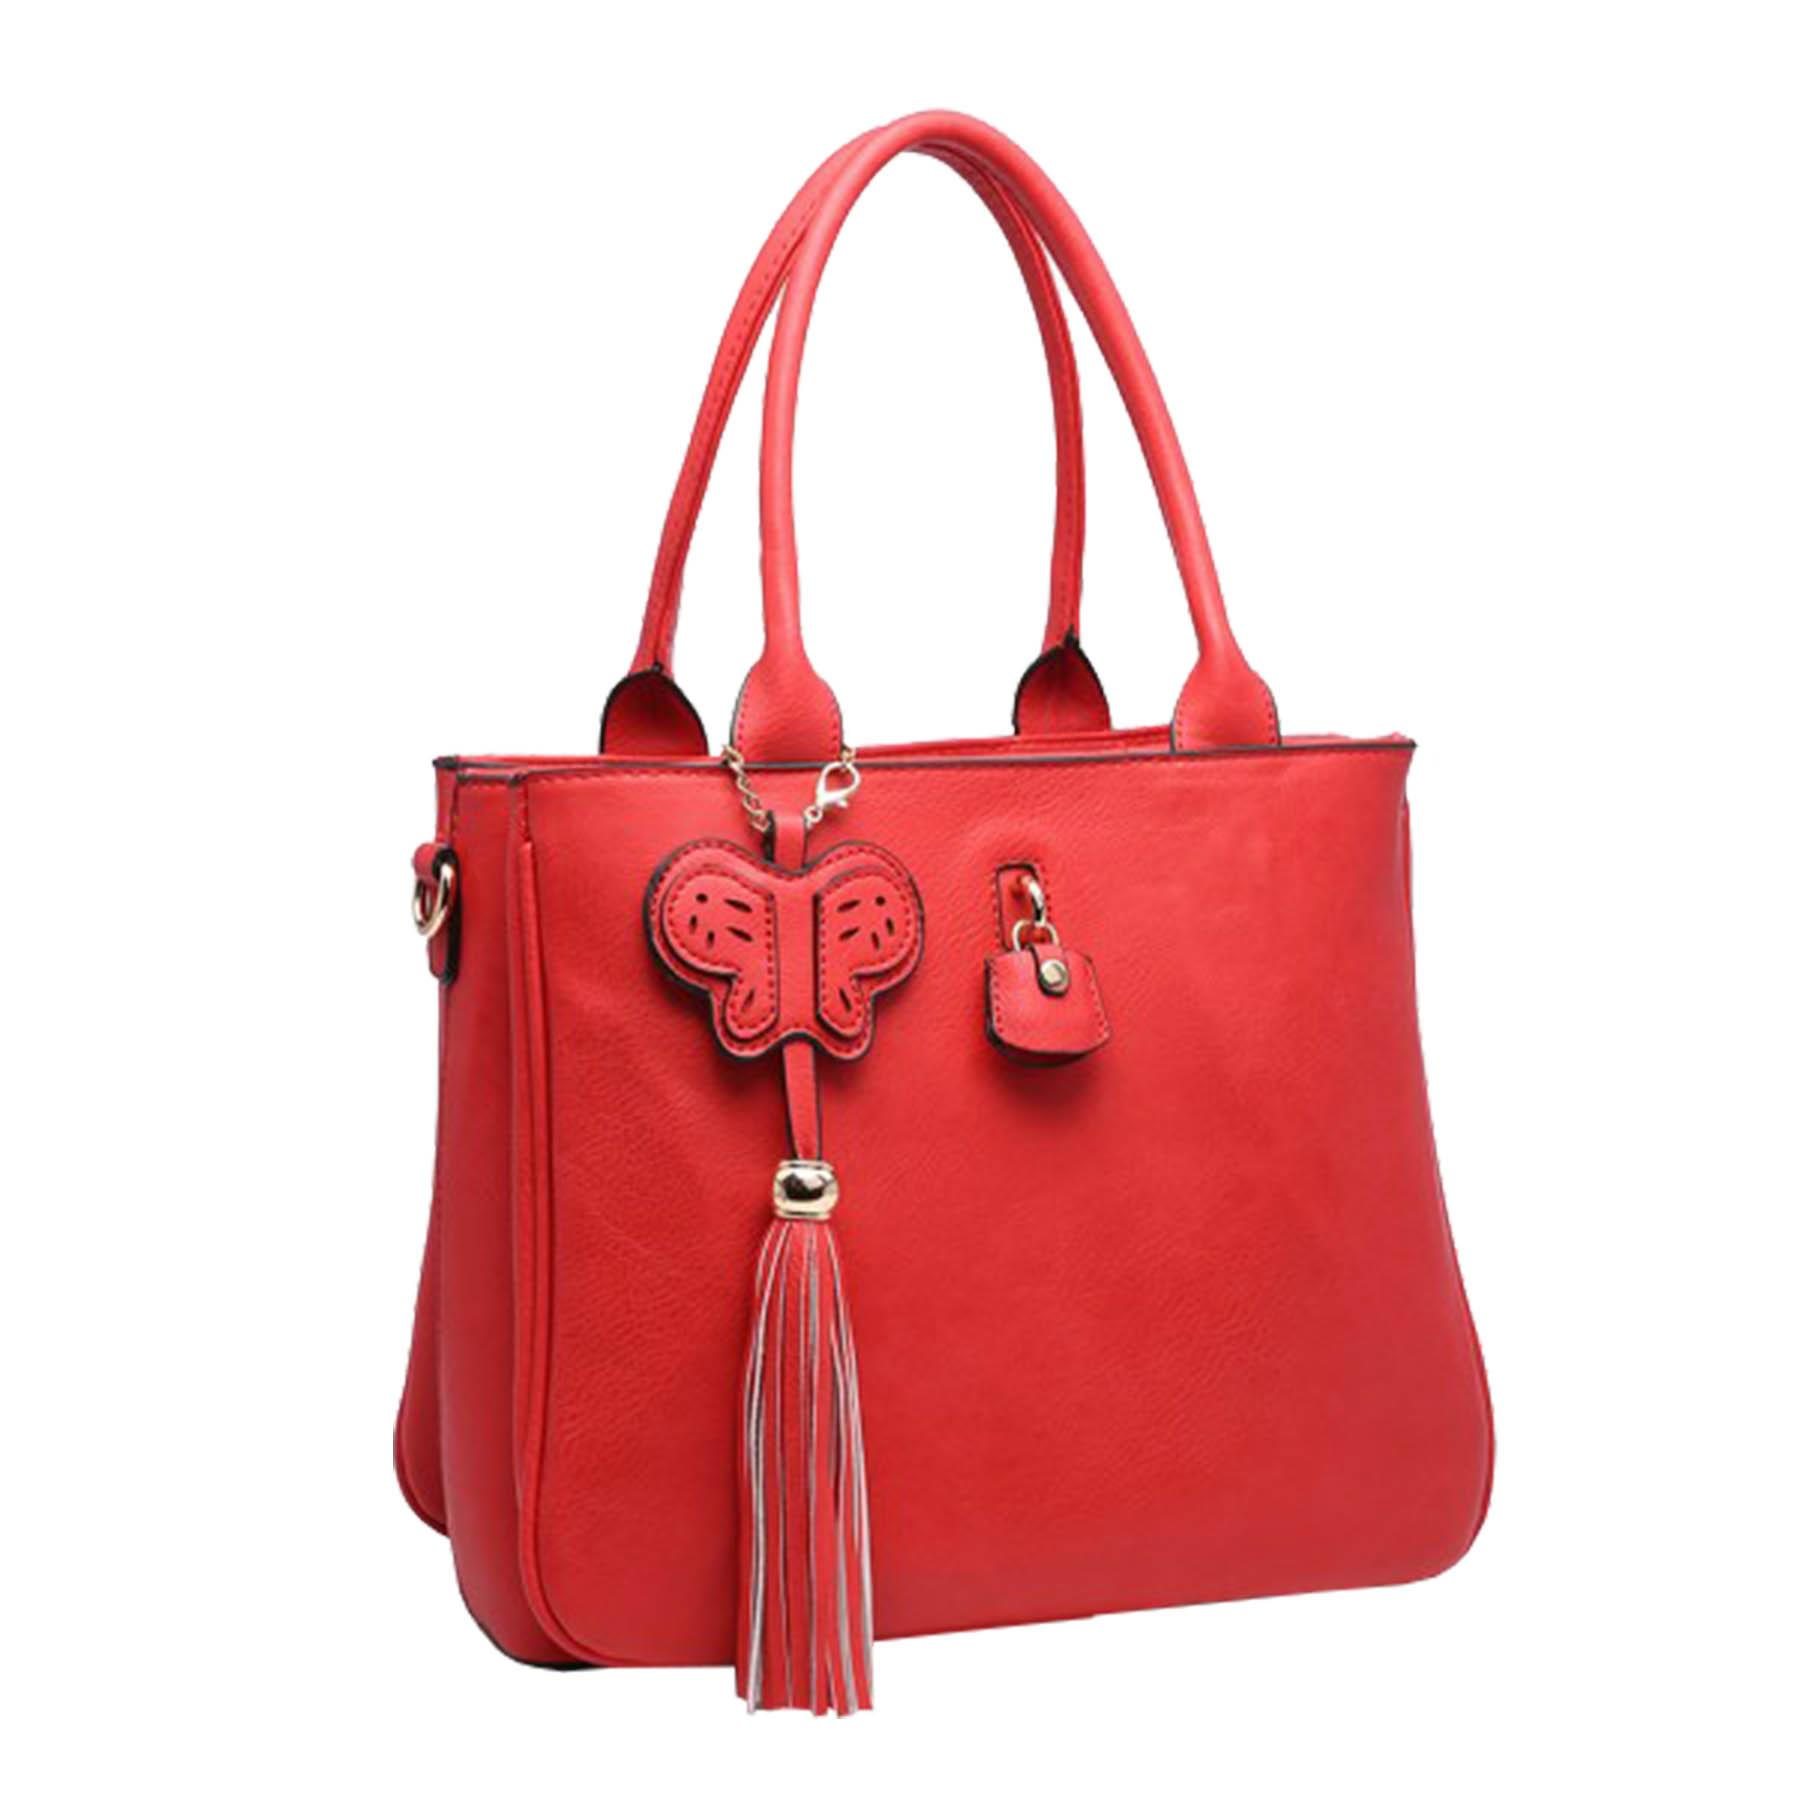 New-Synthetic-Leather-Butterfly-Tassel-Charm-Women-s-Shoulder-Tote-Bag thumbnail 9